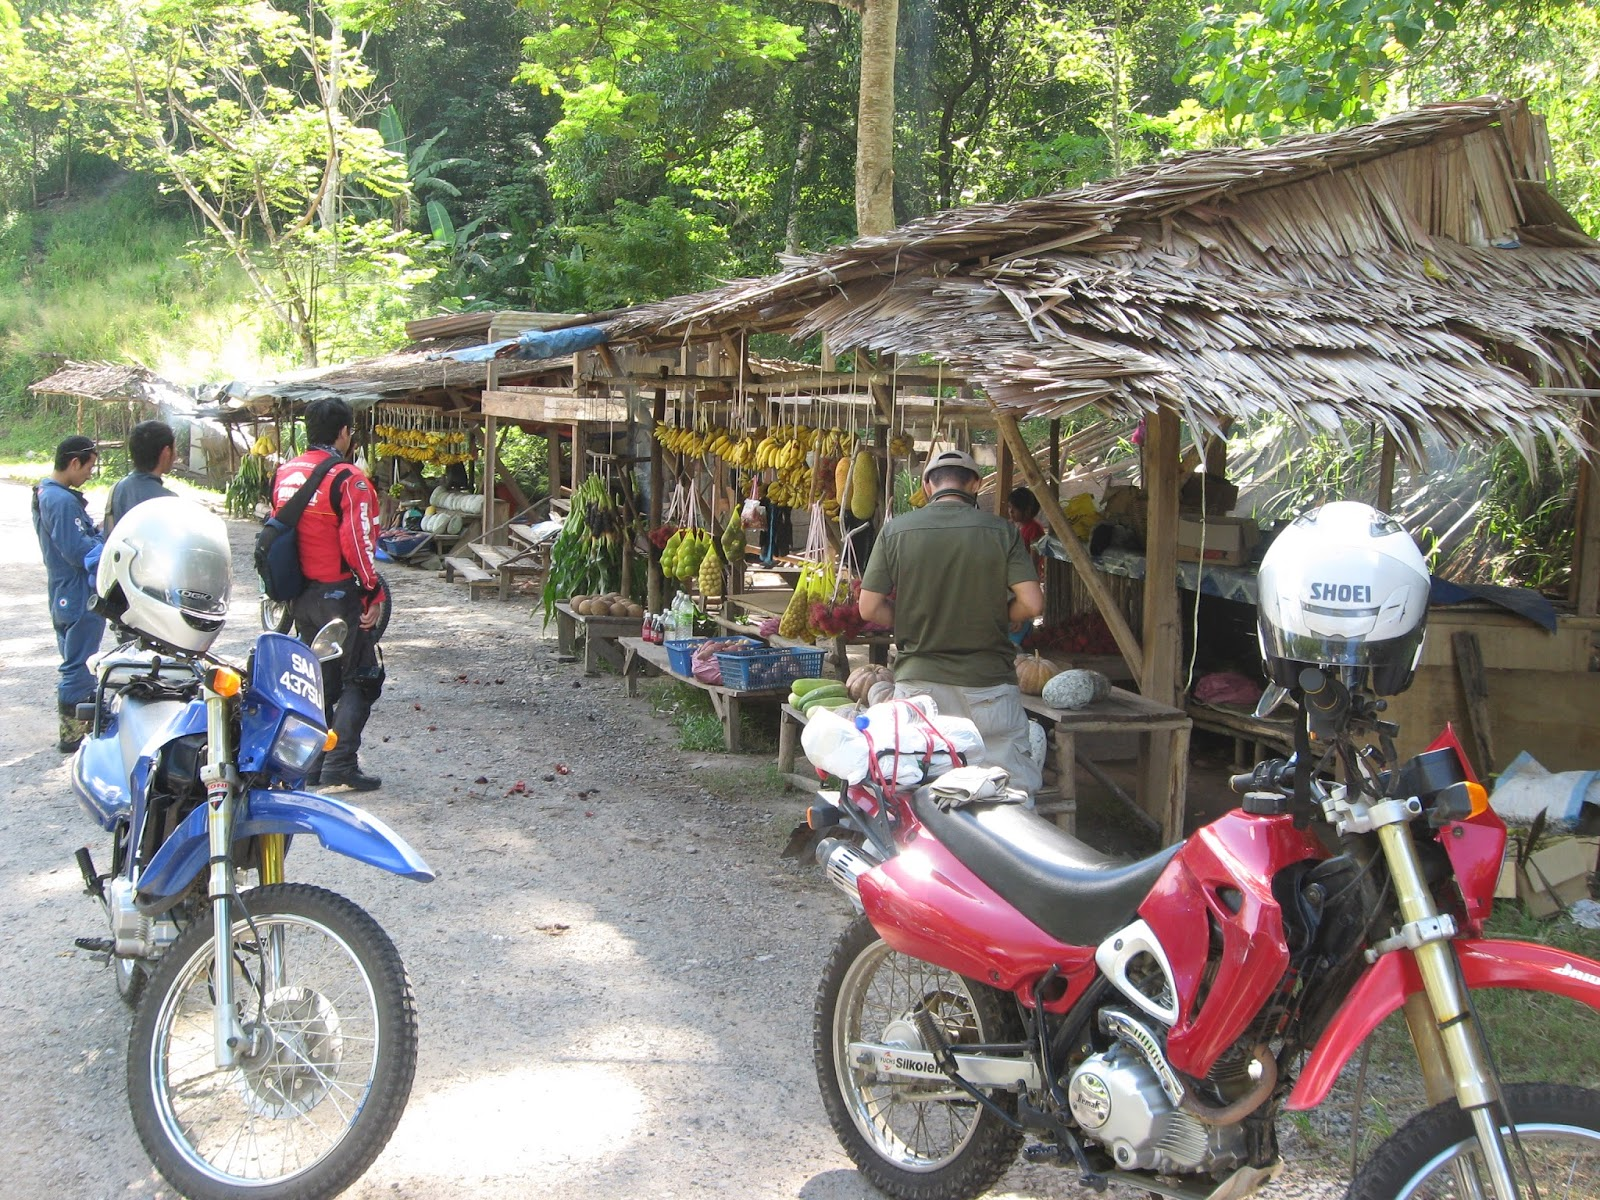 Motorcycle rentals ride borneo bike rentals Motor cycle rentals